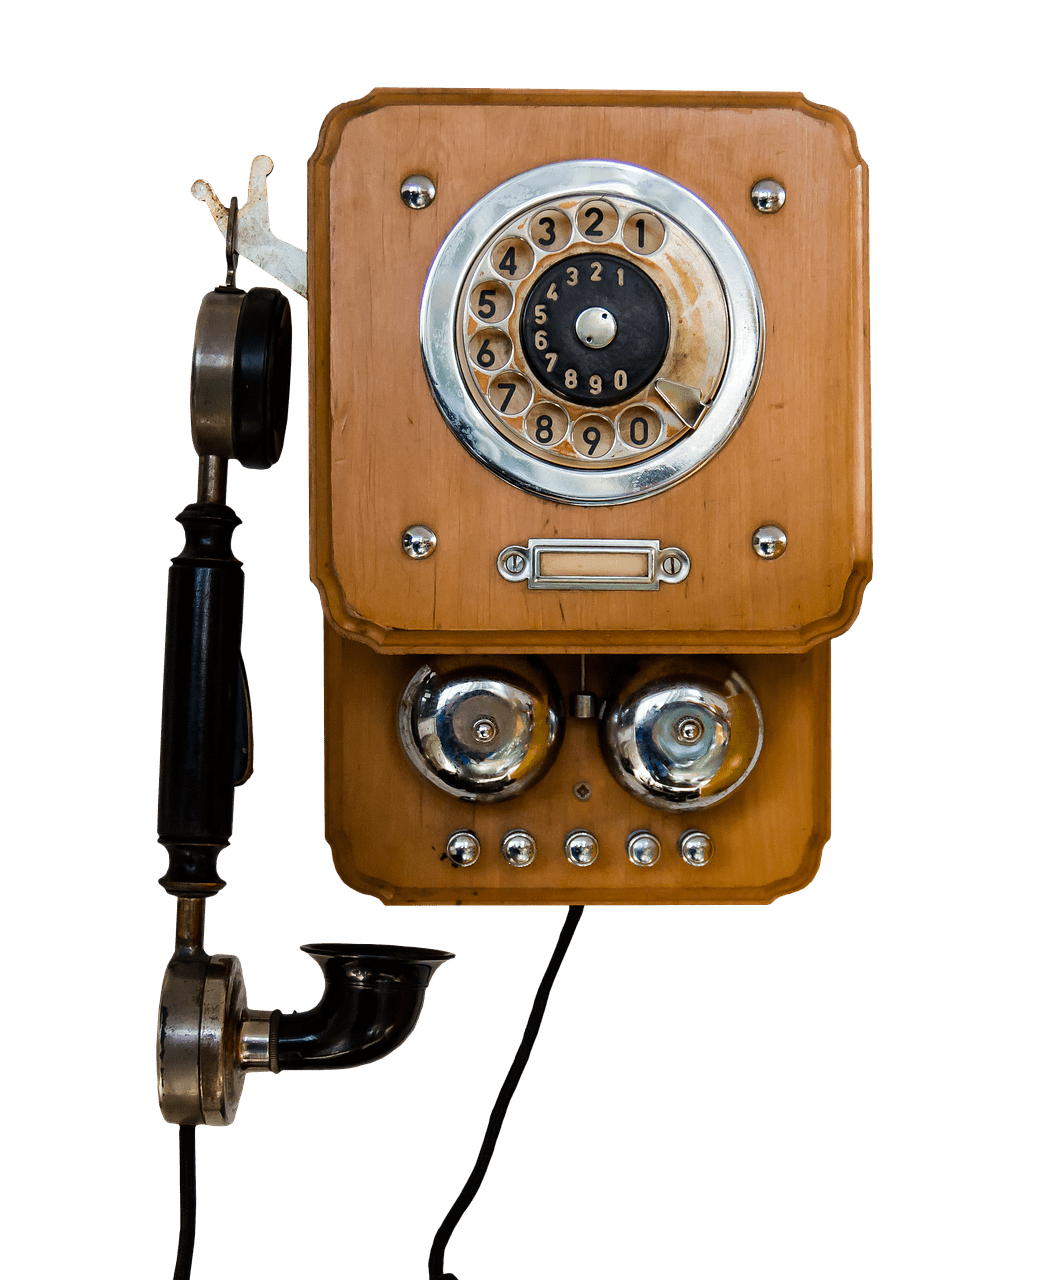 Vintage mounted on wall. Clipart telephone antique telephone